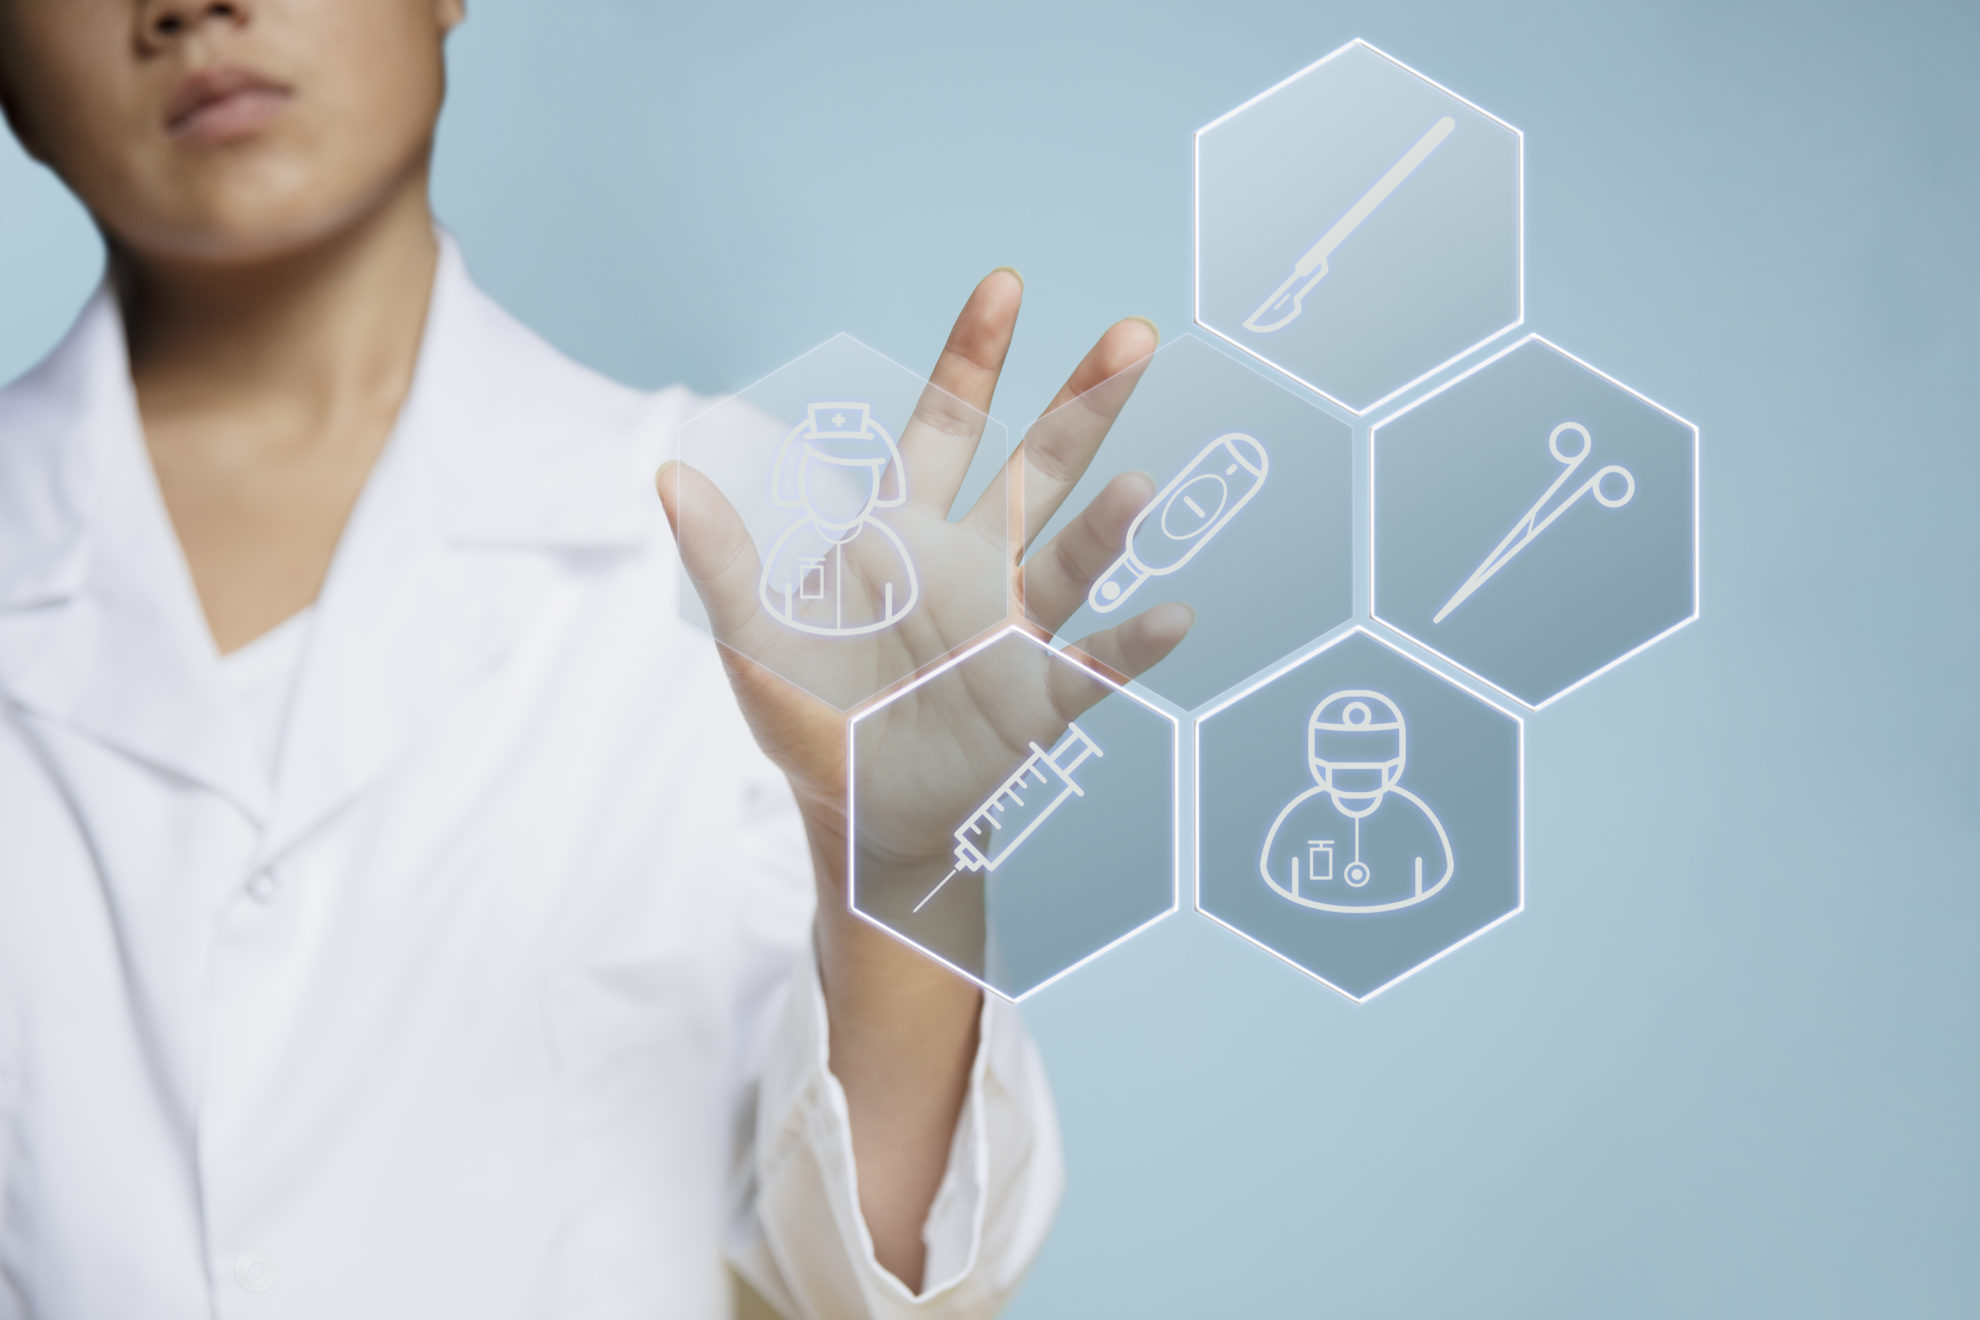 Person using IoT device in the healthcare, pharmaceutical, biotechnology industries.